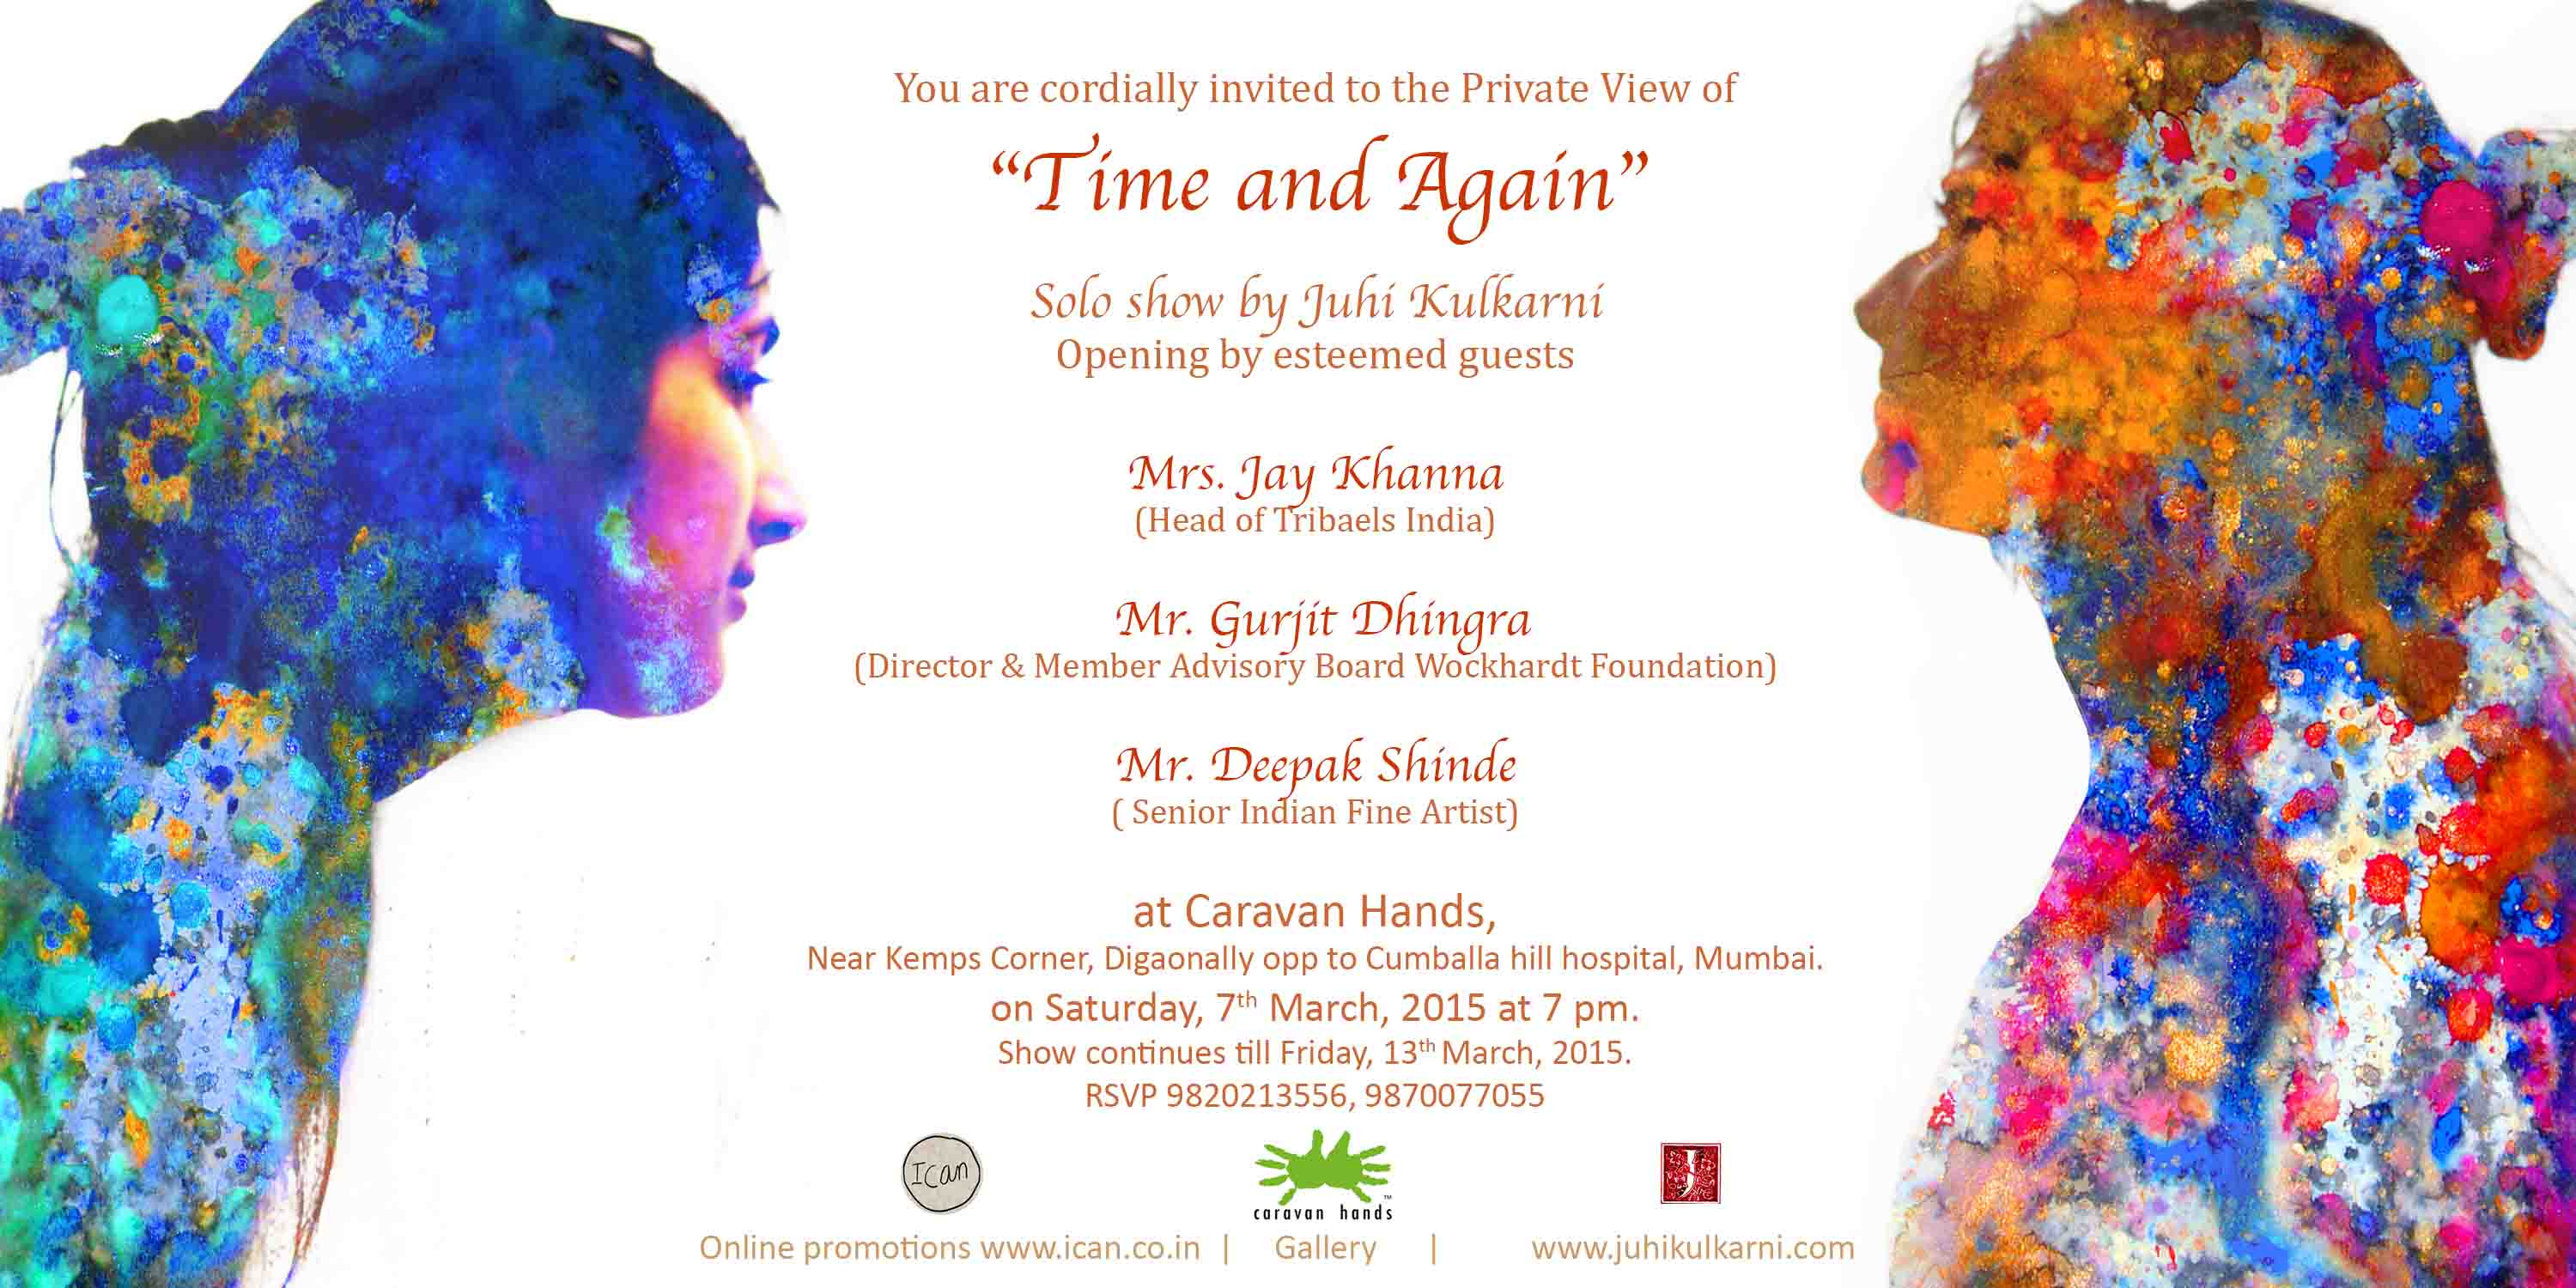 Invitation for the show